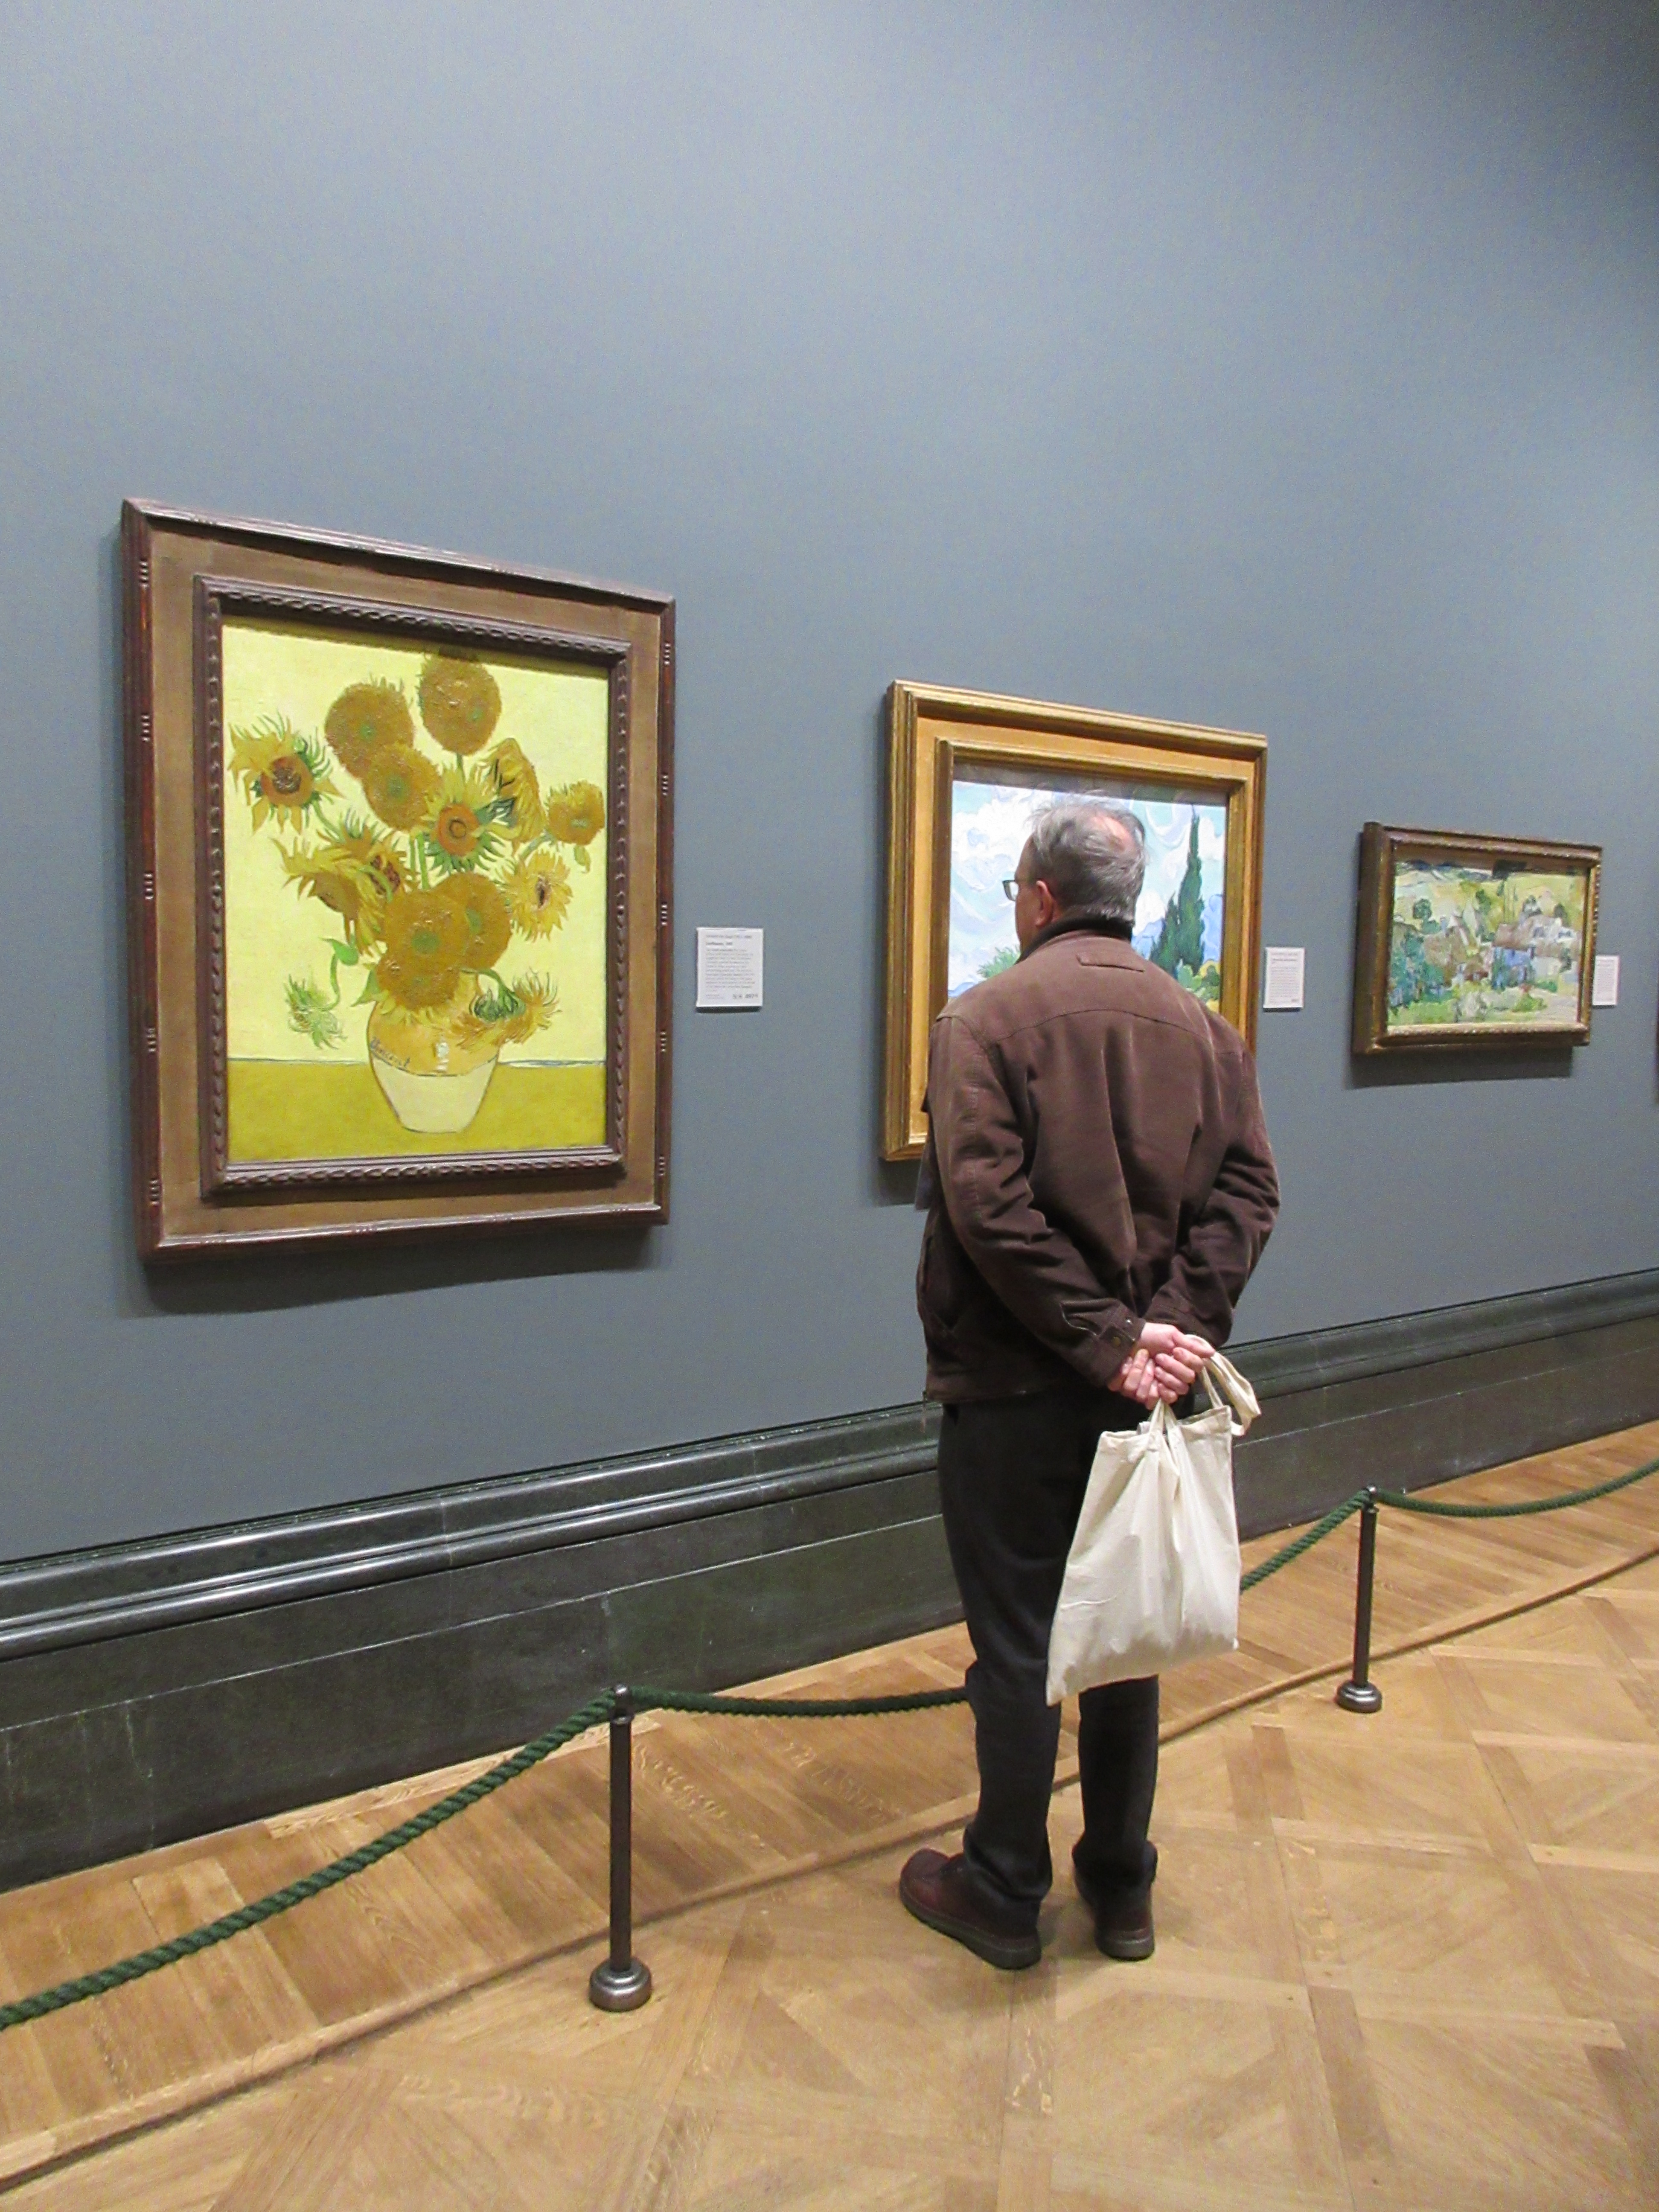 Sunflowers by Vincent van Gogh - photo by Juliamaud